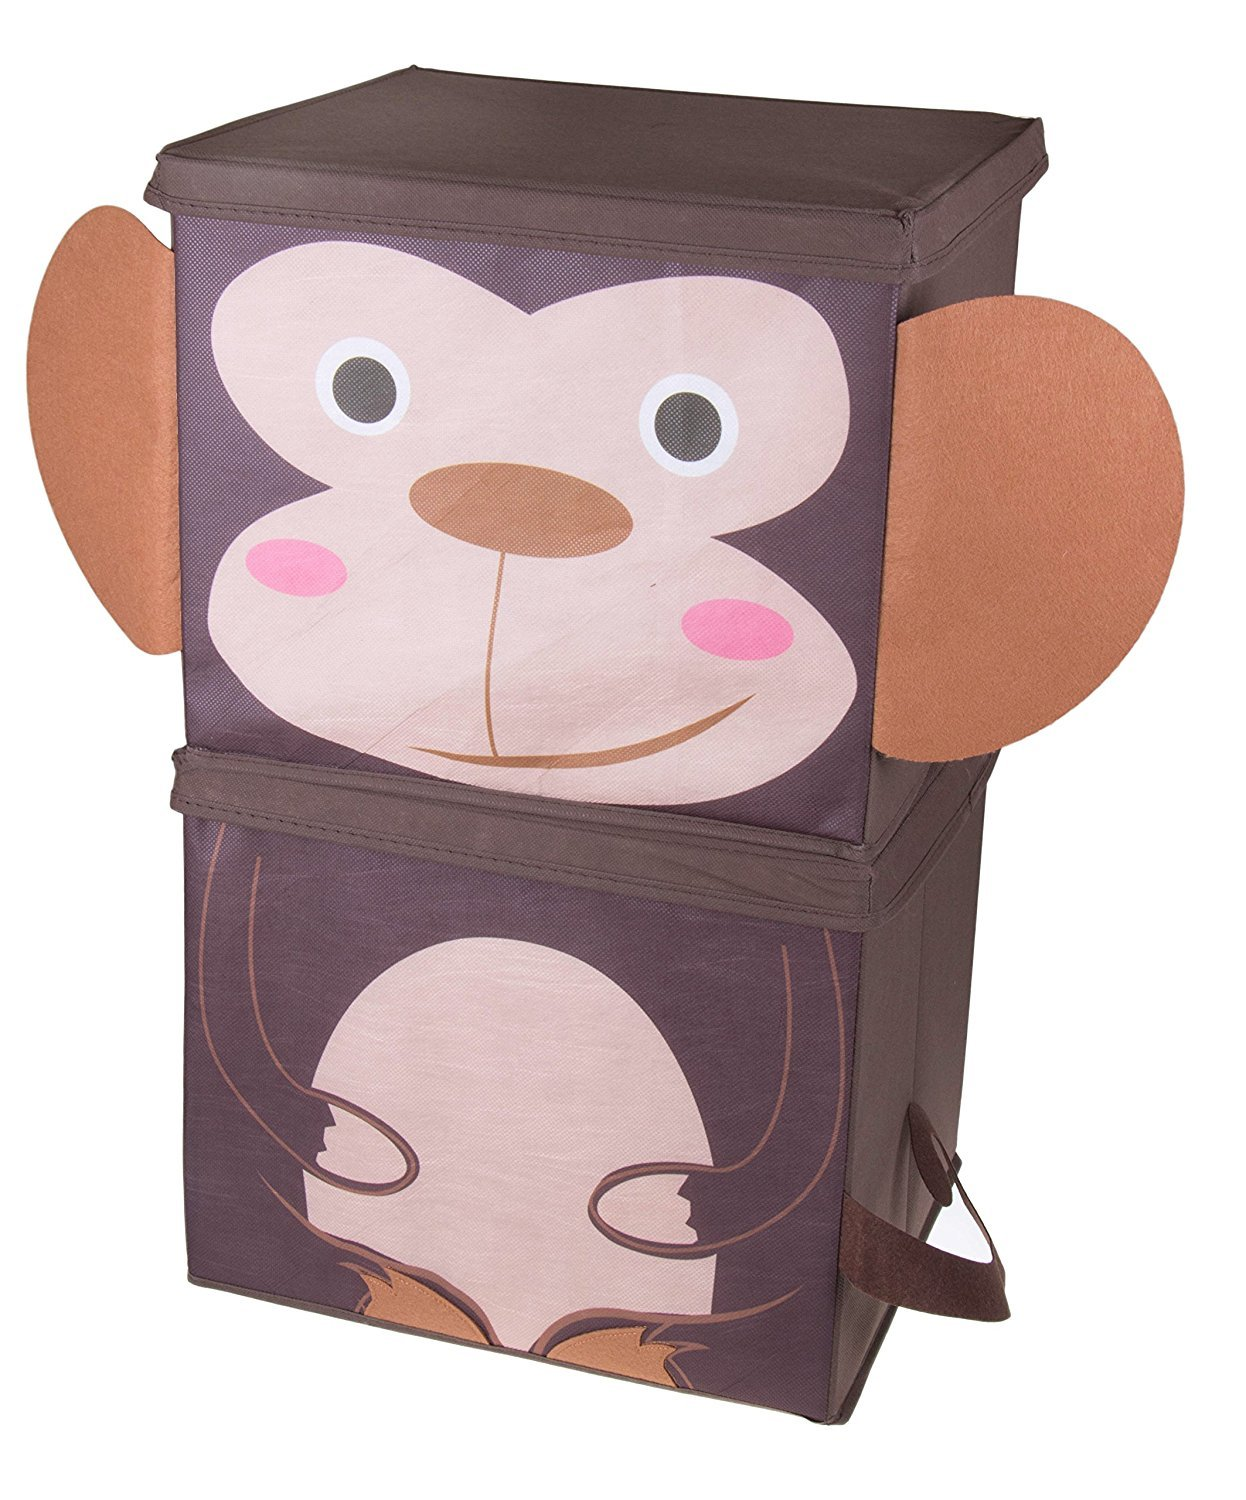 Cute Monkey Stackable Storage Organizer by Clever Creations   Collapsible Storage Box Any Room   Perfect Size Chest for Organizing Dog Toys, Clothes, Shoes and More!